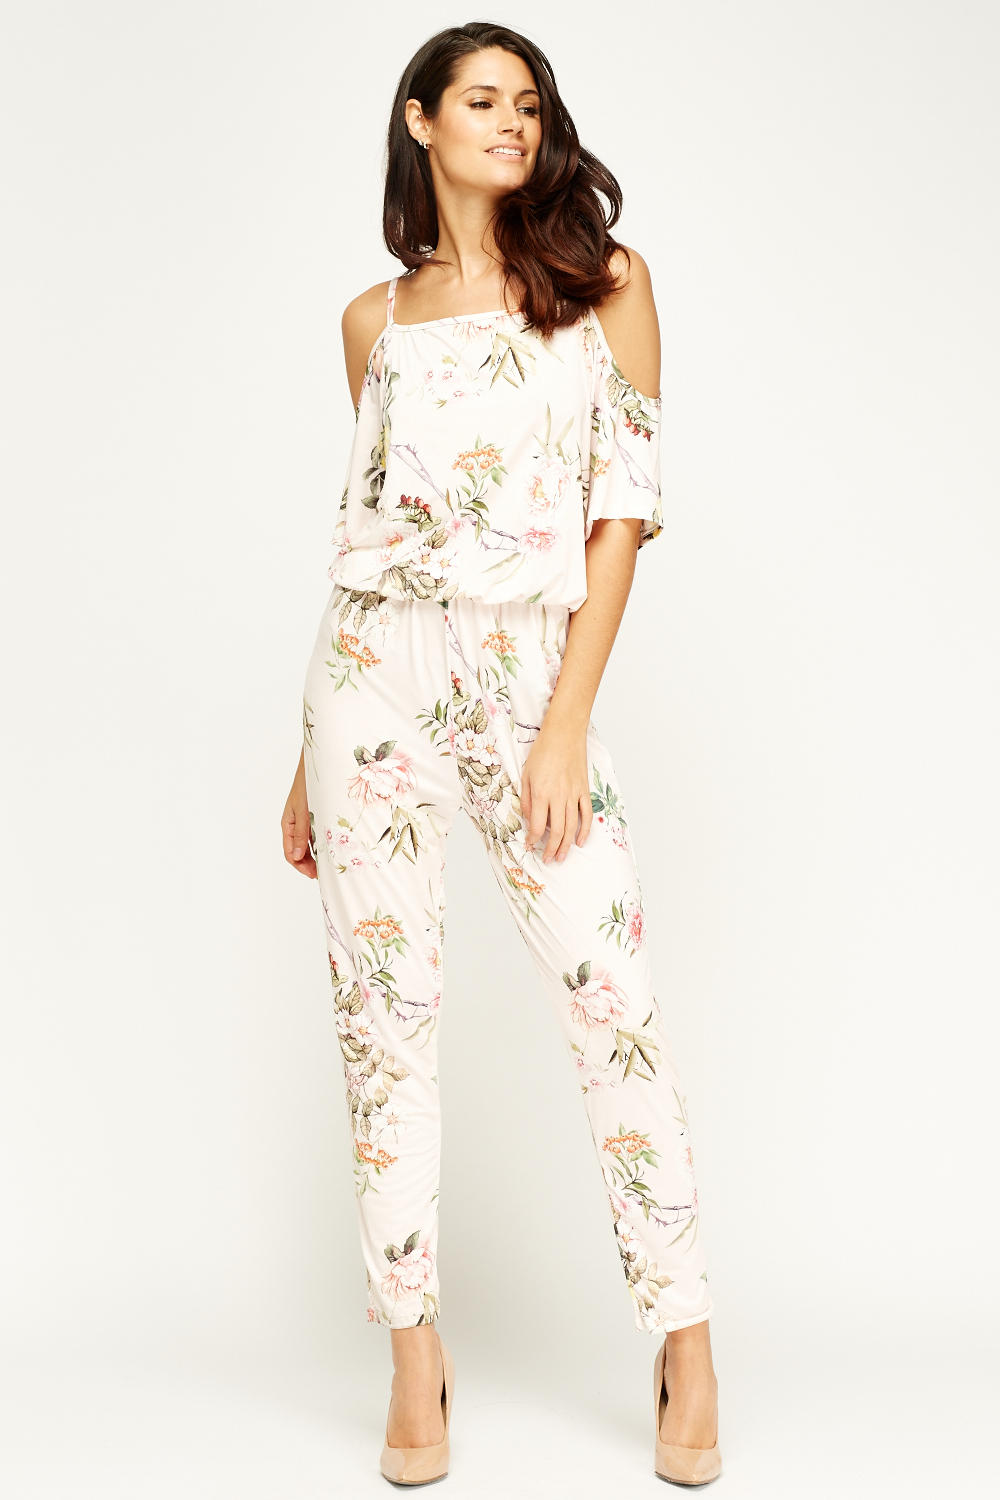 200372c3678 Kimi And Co Light Pink Floral Jumpsuit - Limited edition